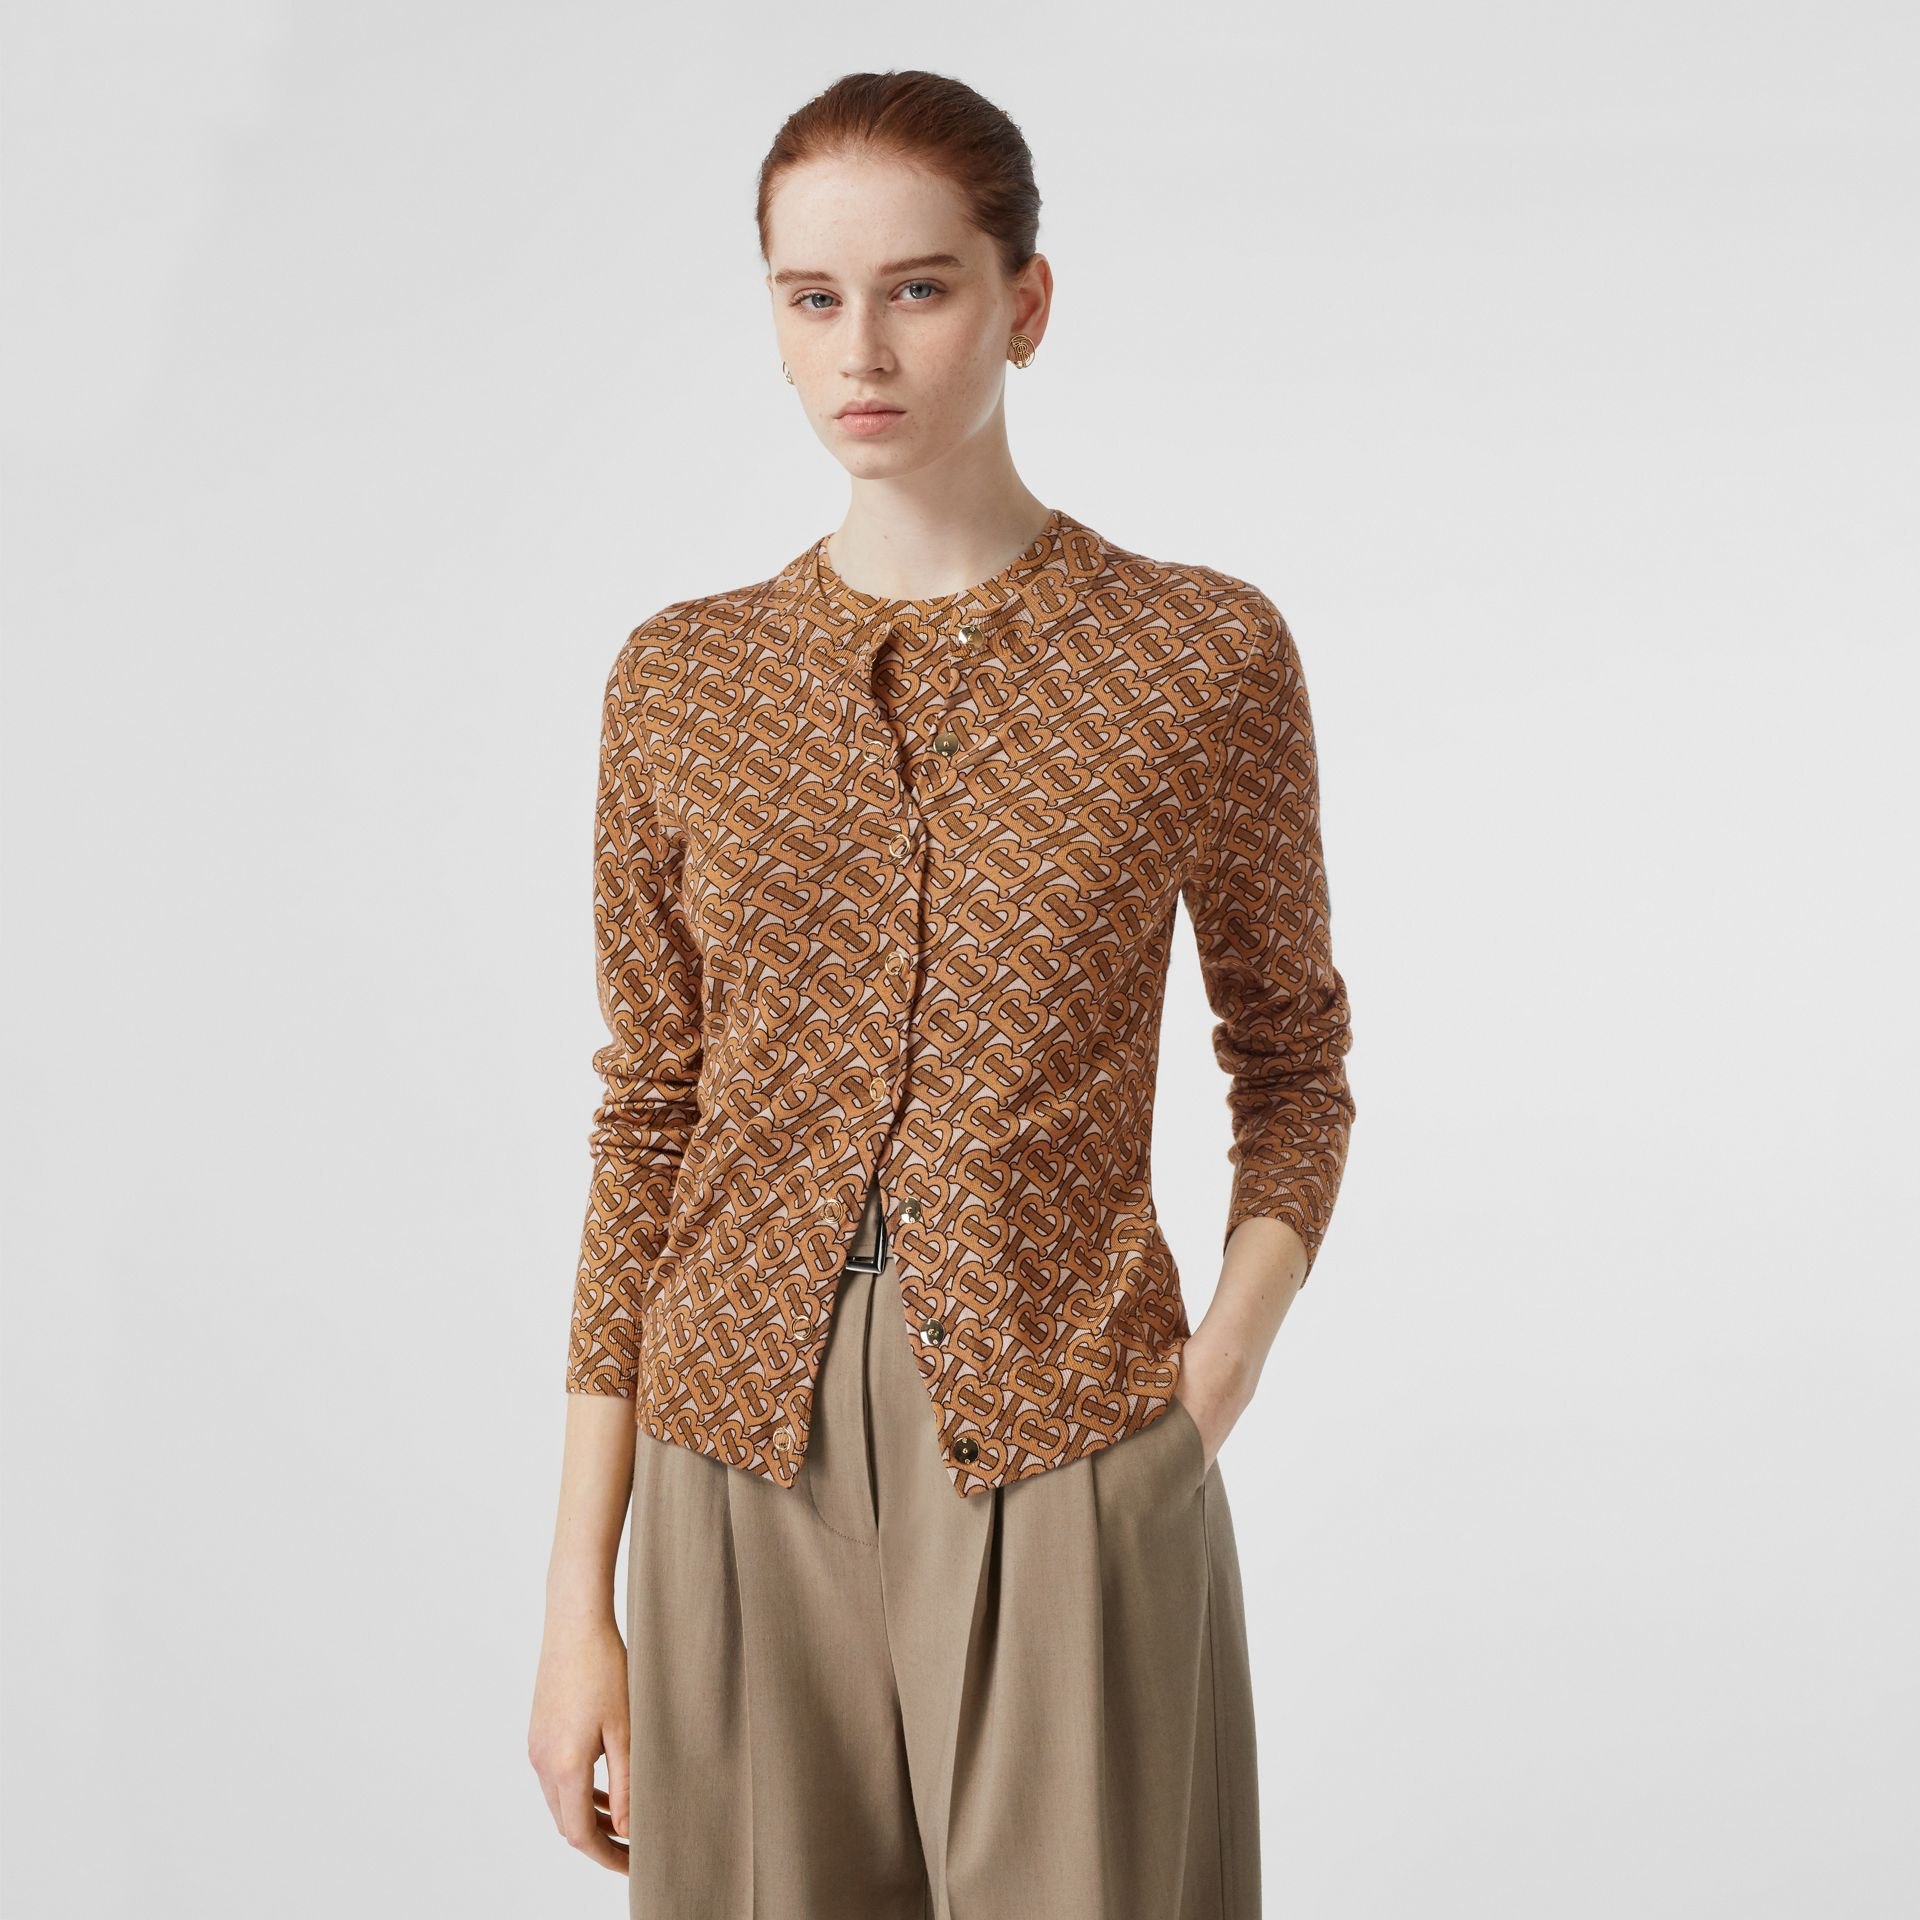 Monogram Print Merino Wool Cardigan in Beige - Women | Burberry Canada - gallery image 4